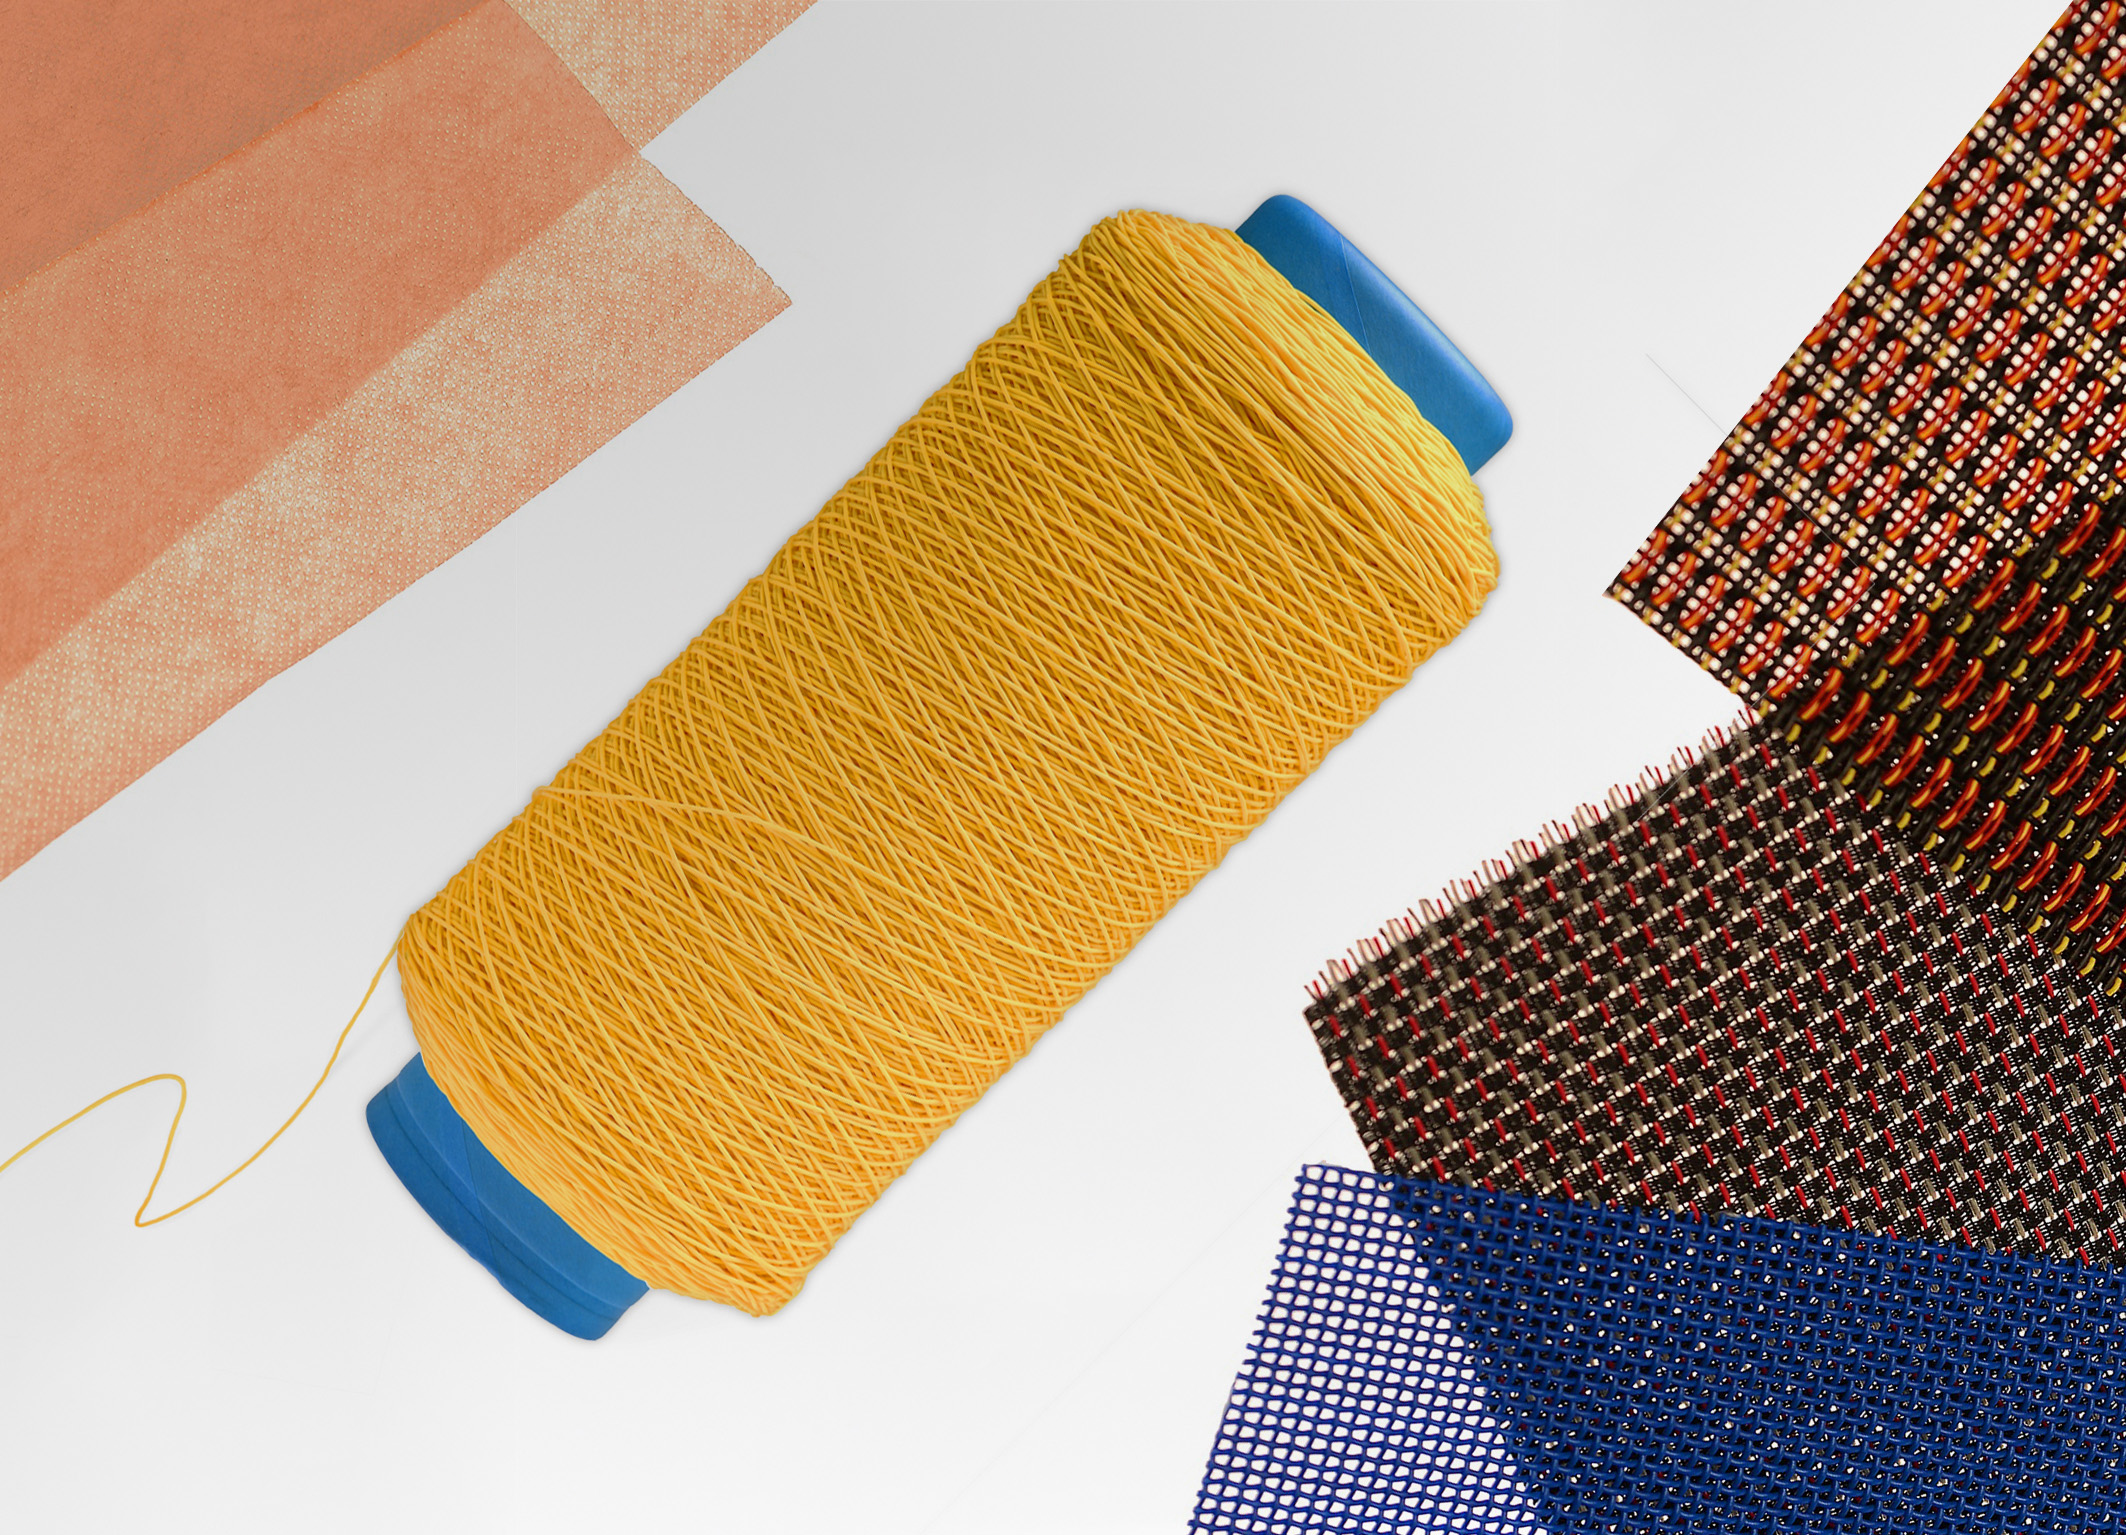 (Source: BASF) Due to its high elasticity and mechanical resilience, Elastollan is often used for the production of various basic materials in the textile industry.